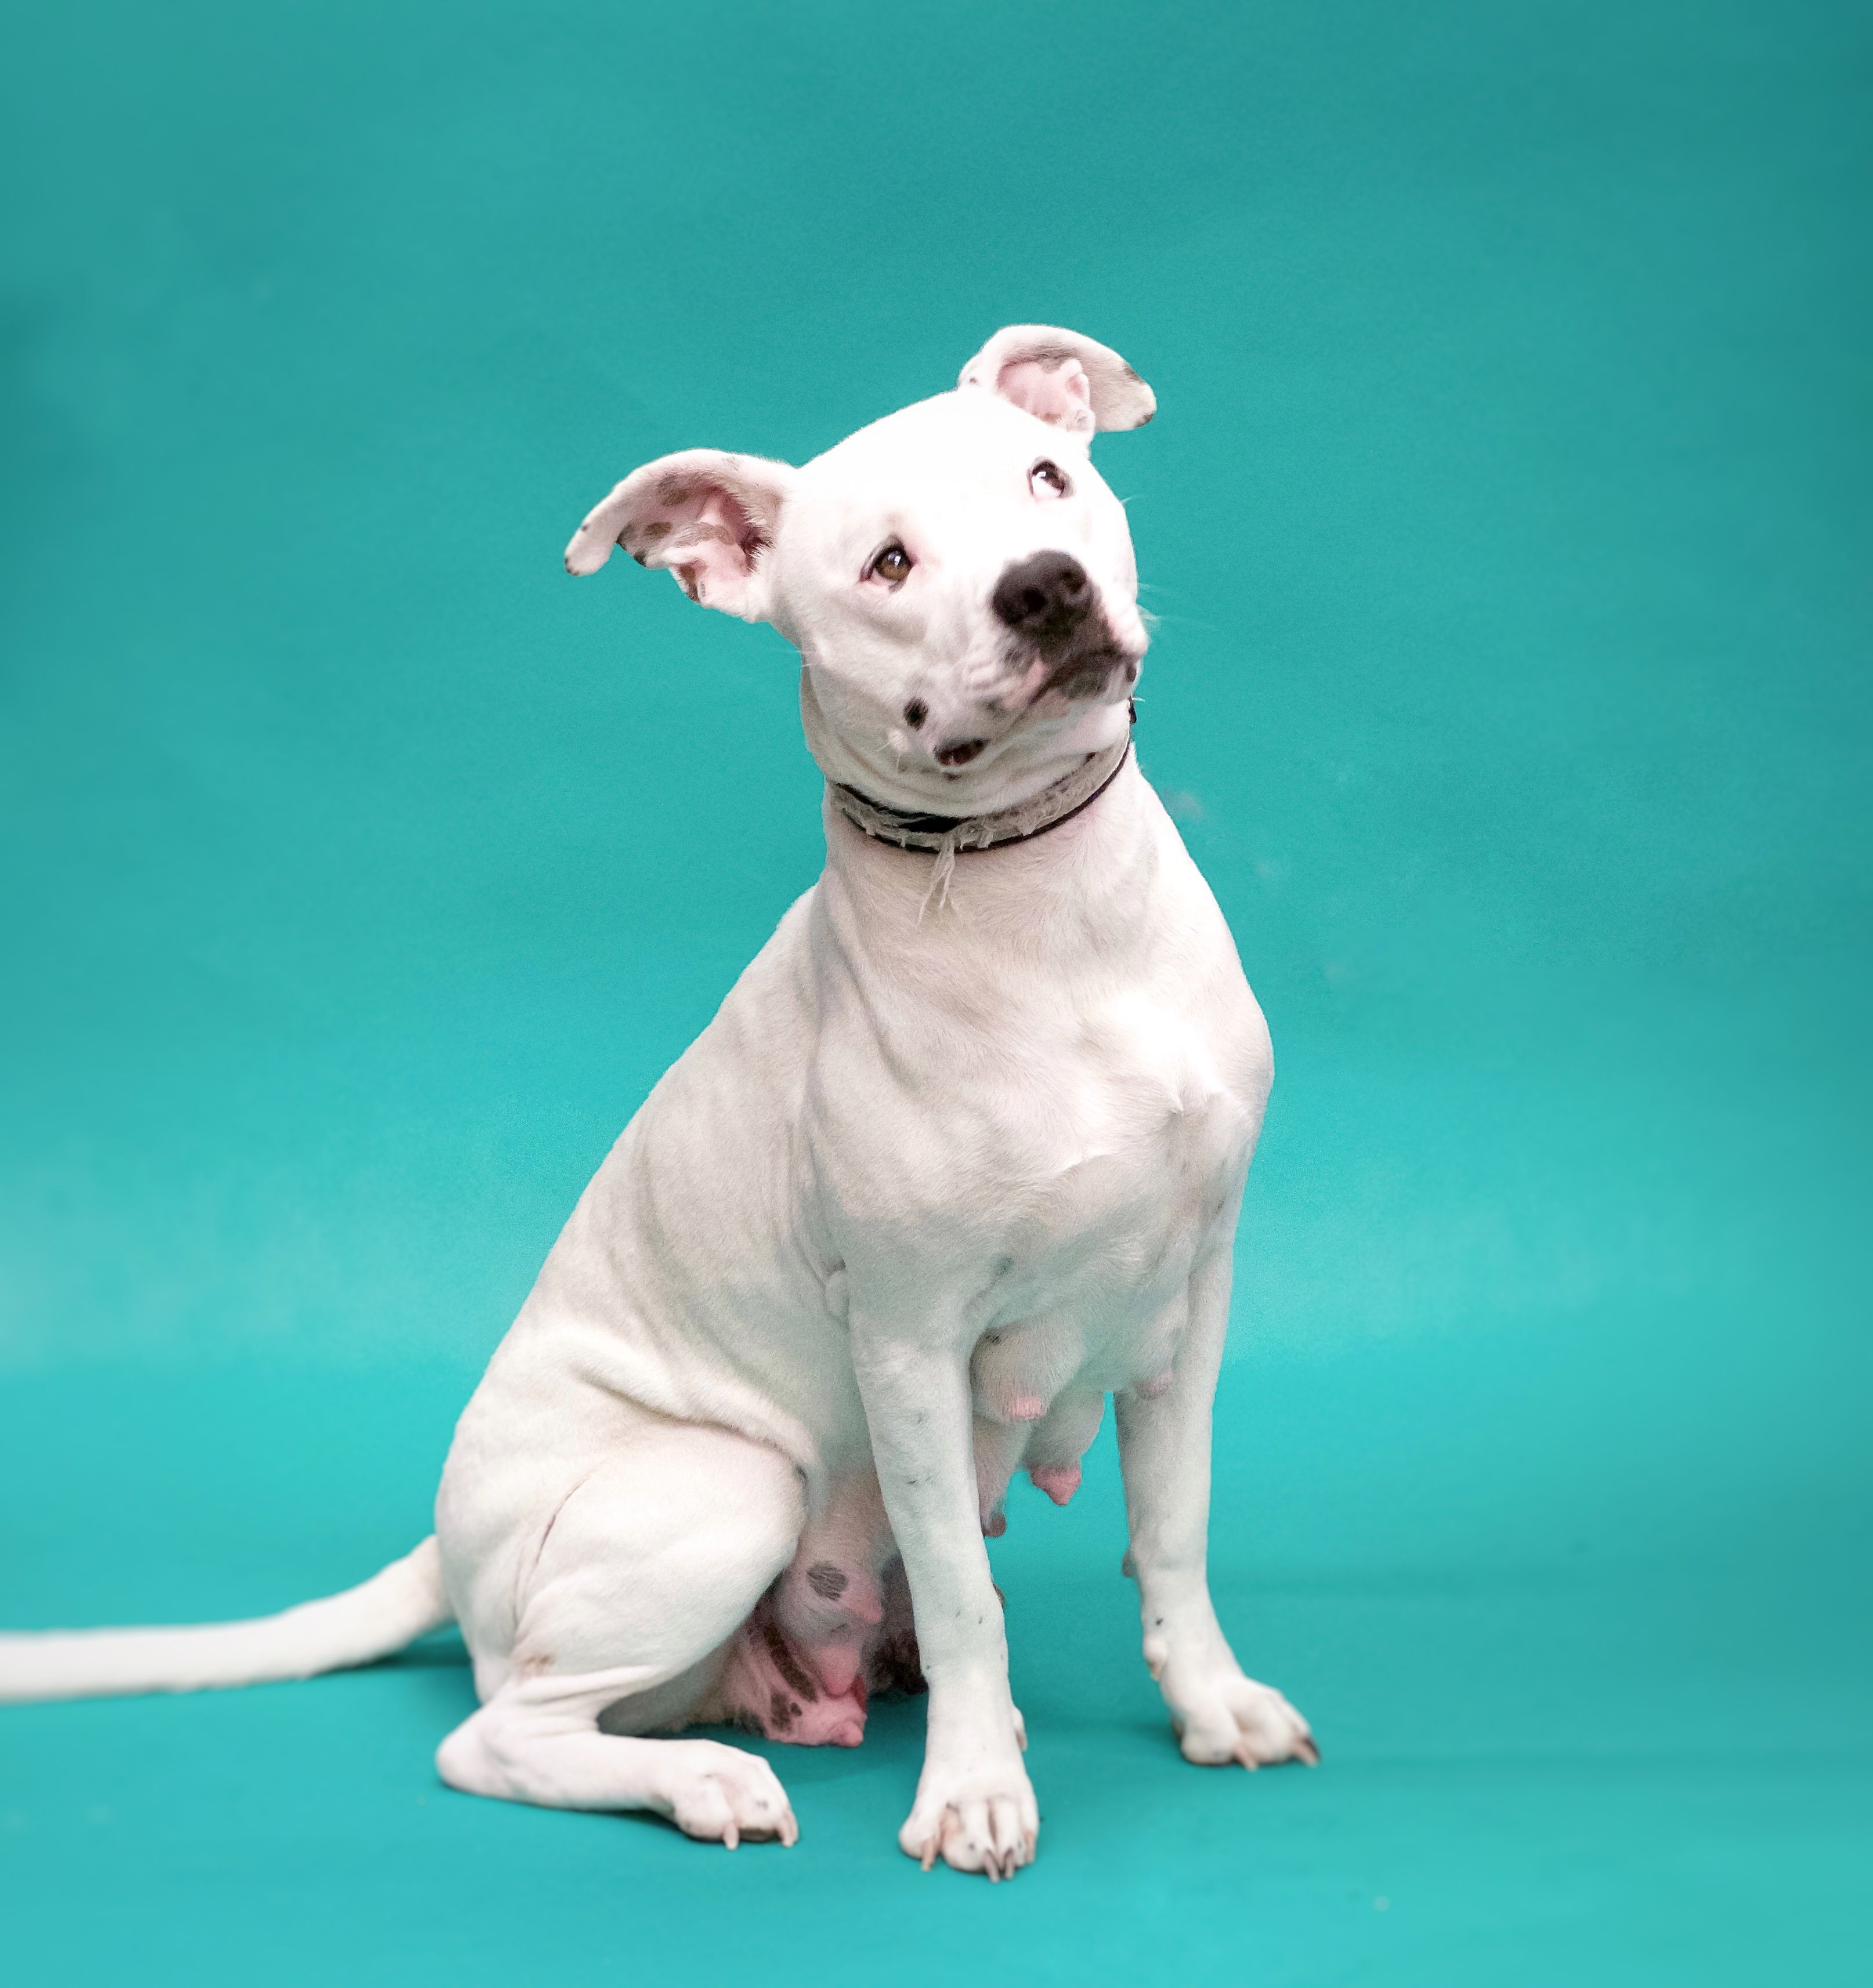 Pitbull Puppies For Adoption In Indiana 2021